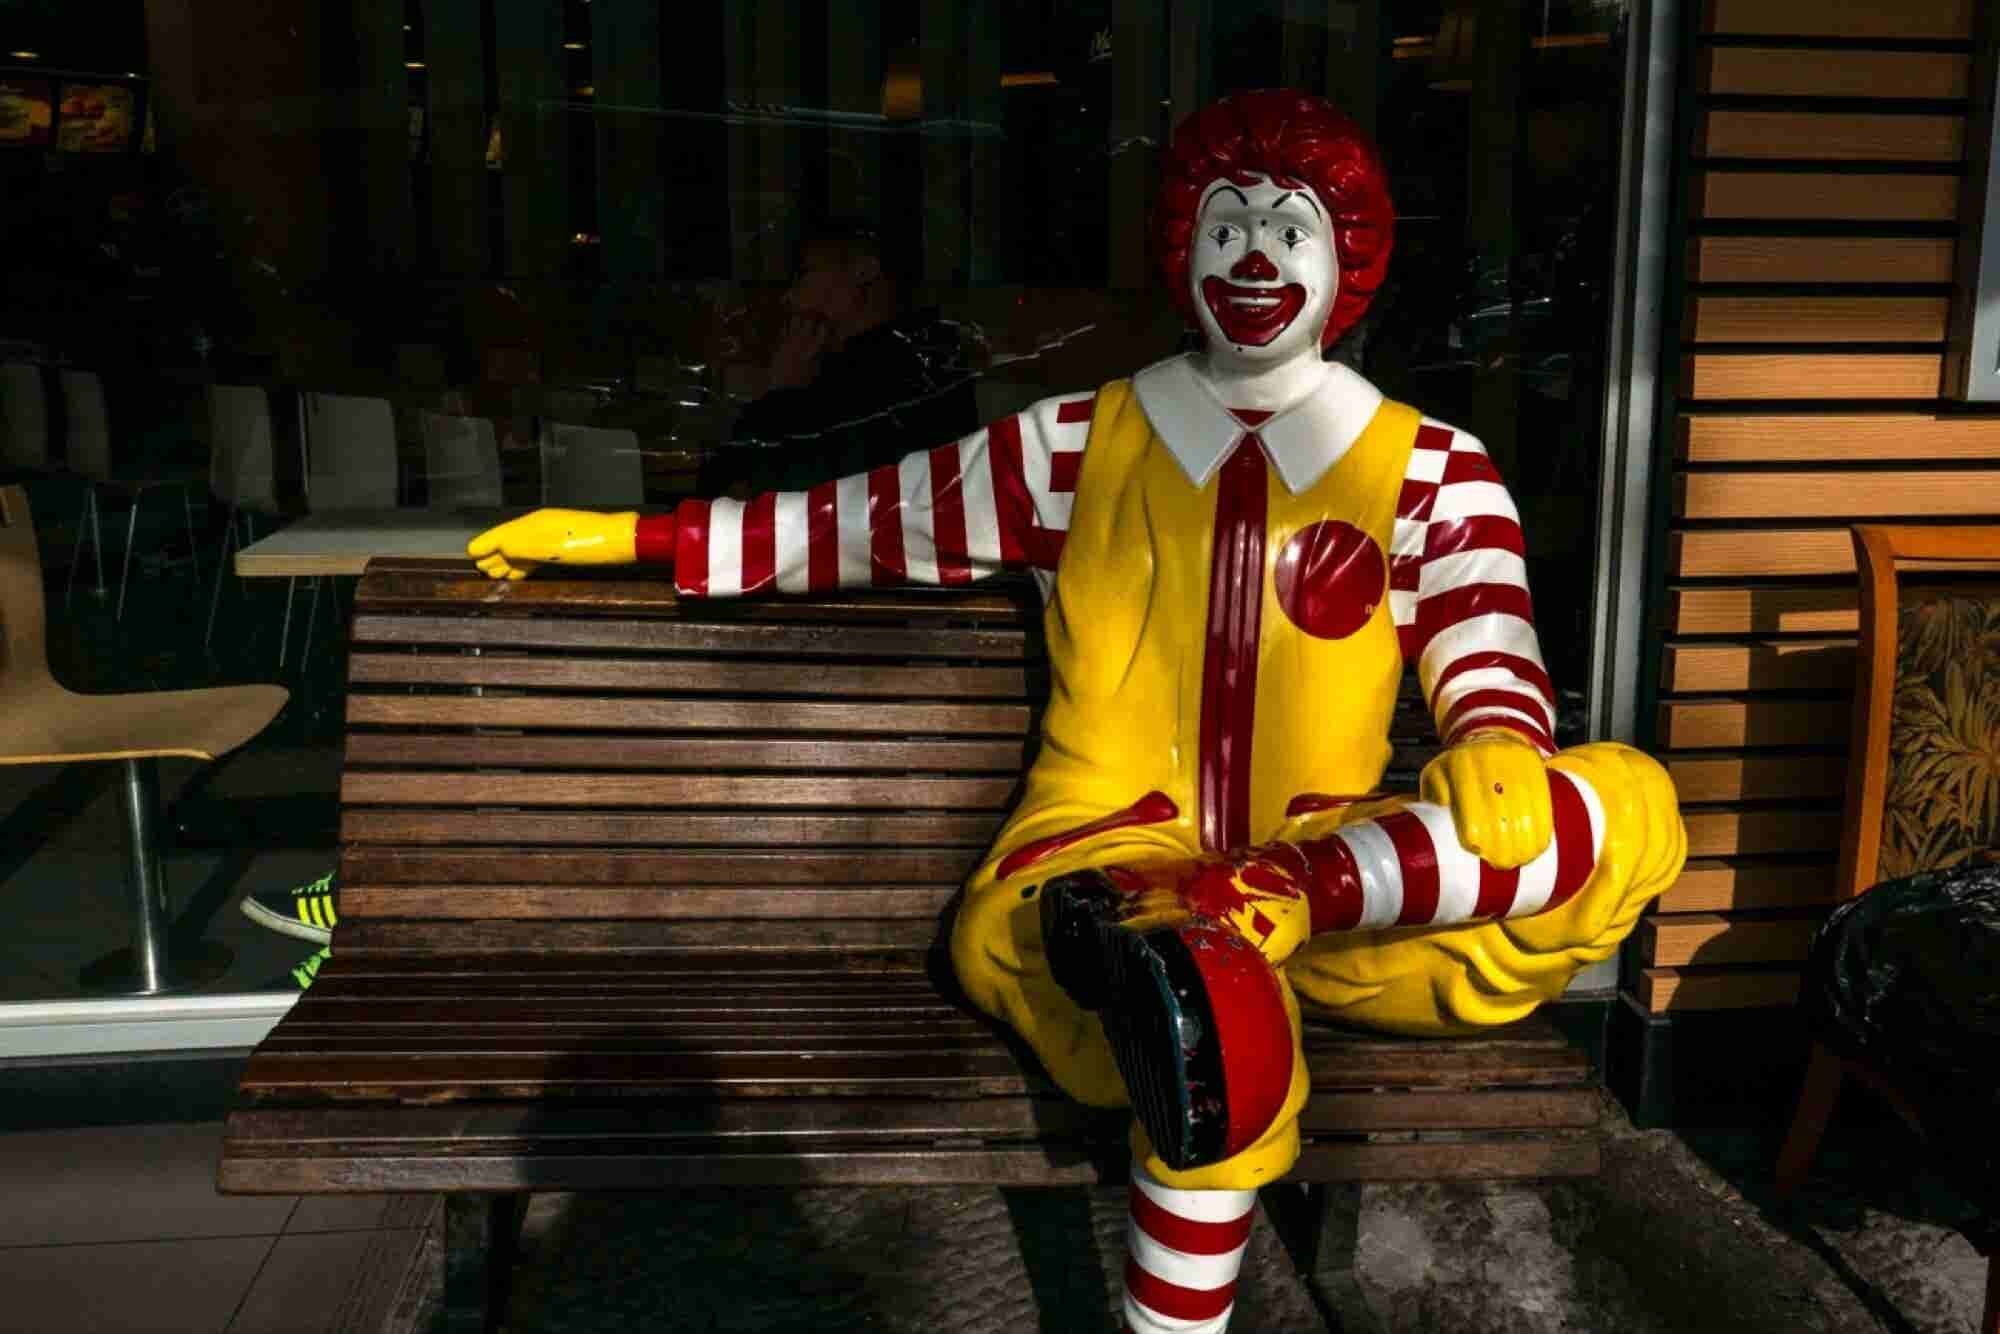 Creepy Clown Panic Forces Ronald McDonald Into Witness Protection Program